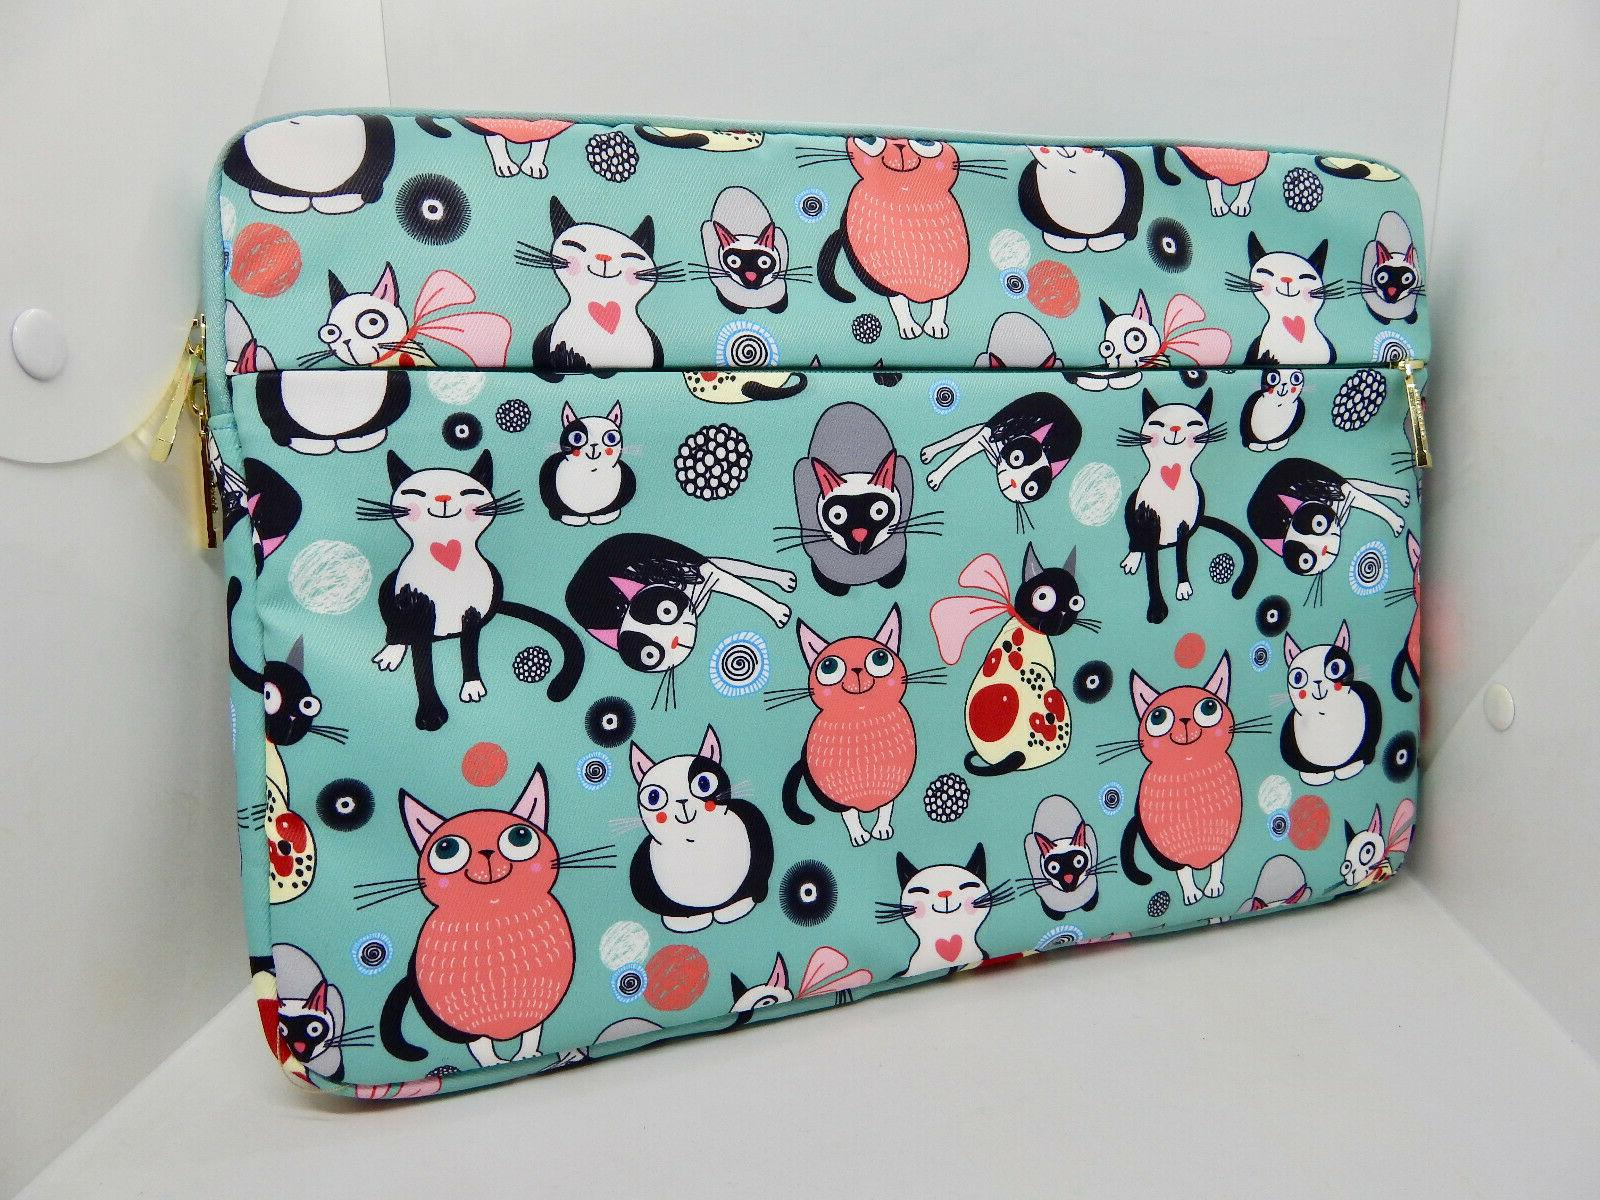 water resistant 15 inch laptop sleeve 15